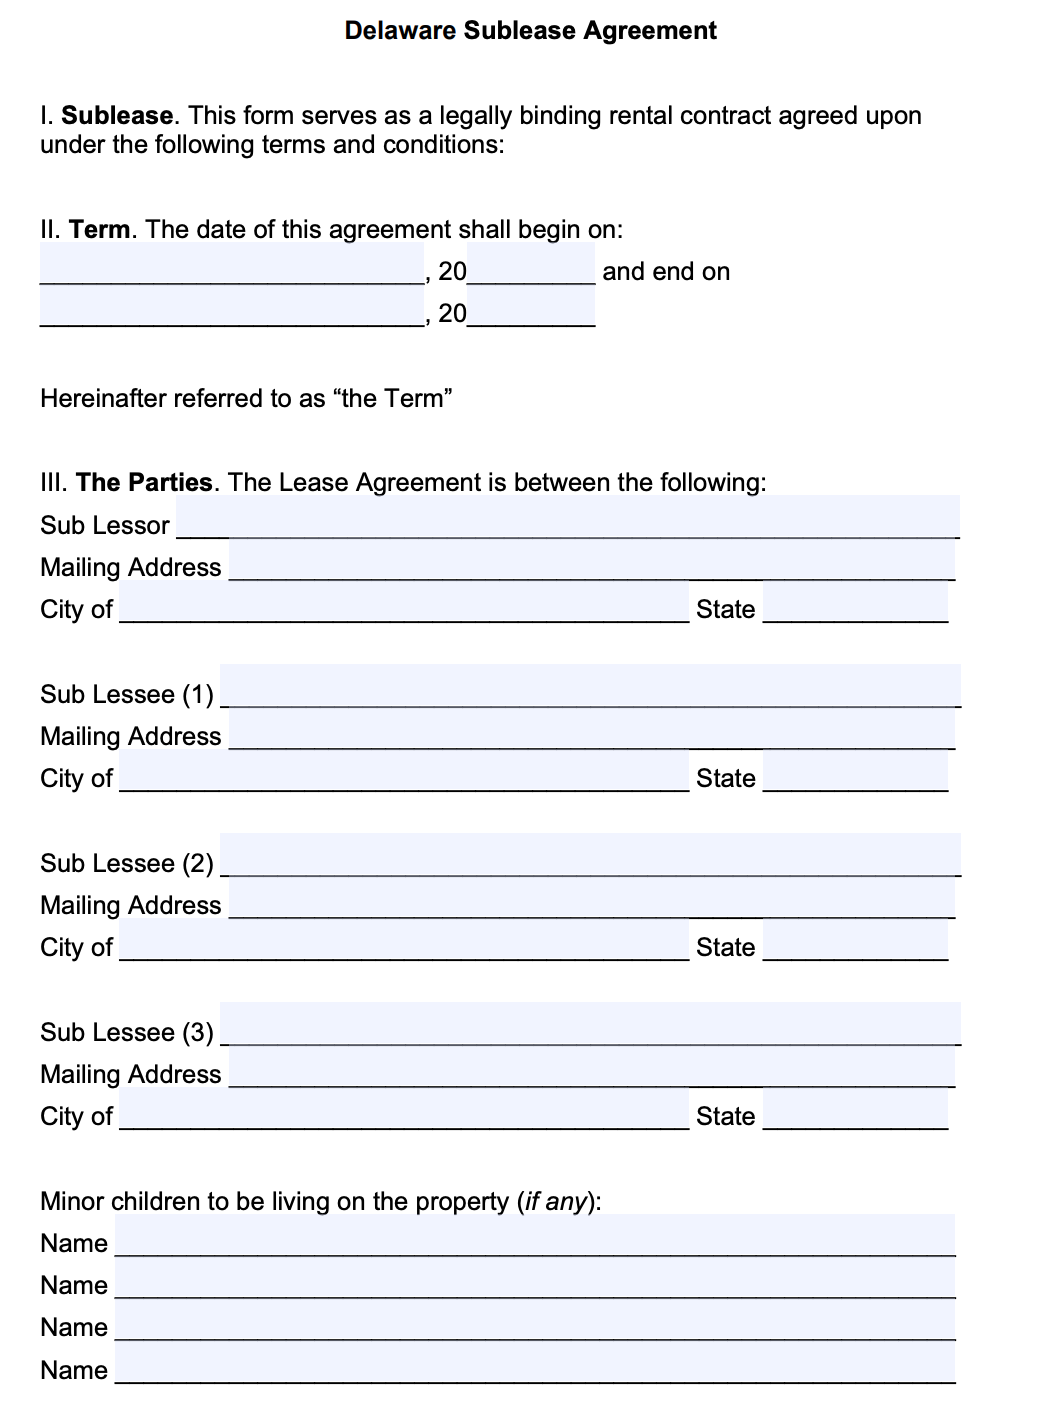 Free Delaware Sublease Agreement Template Pdf Word Doc